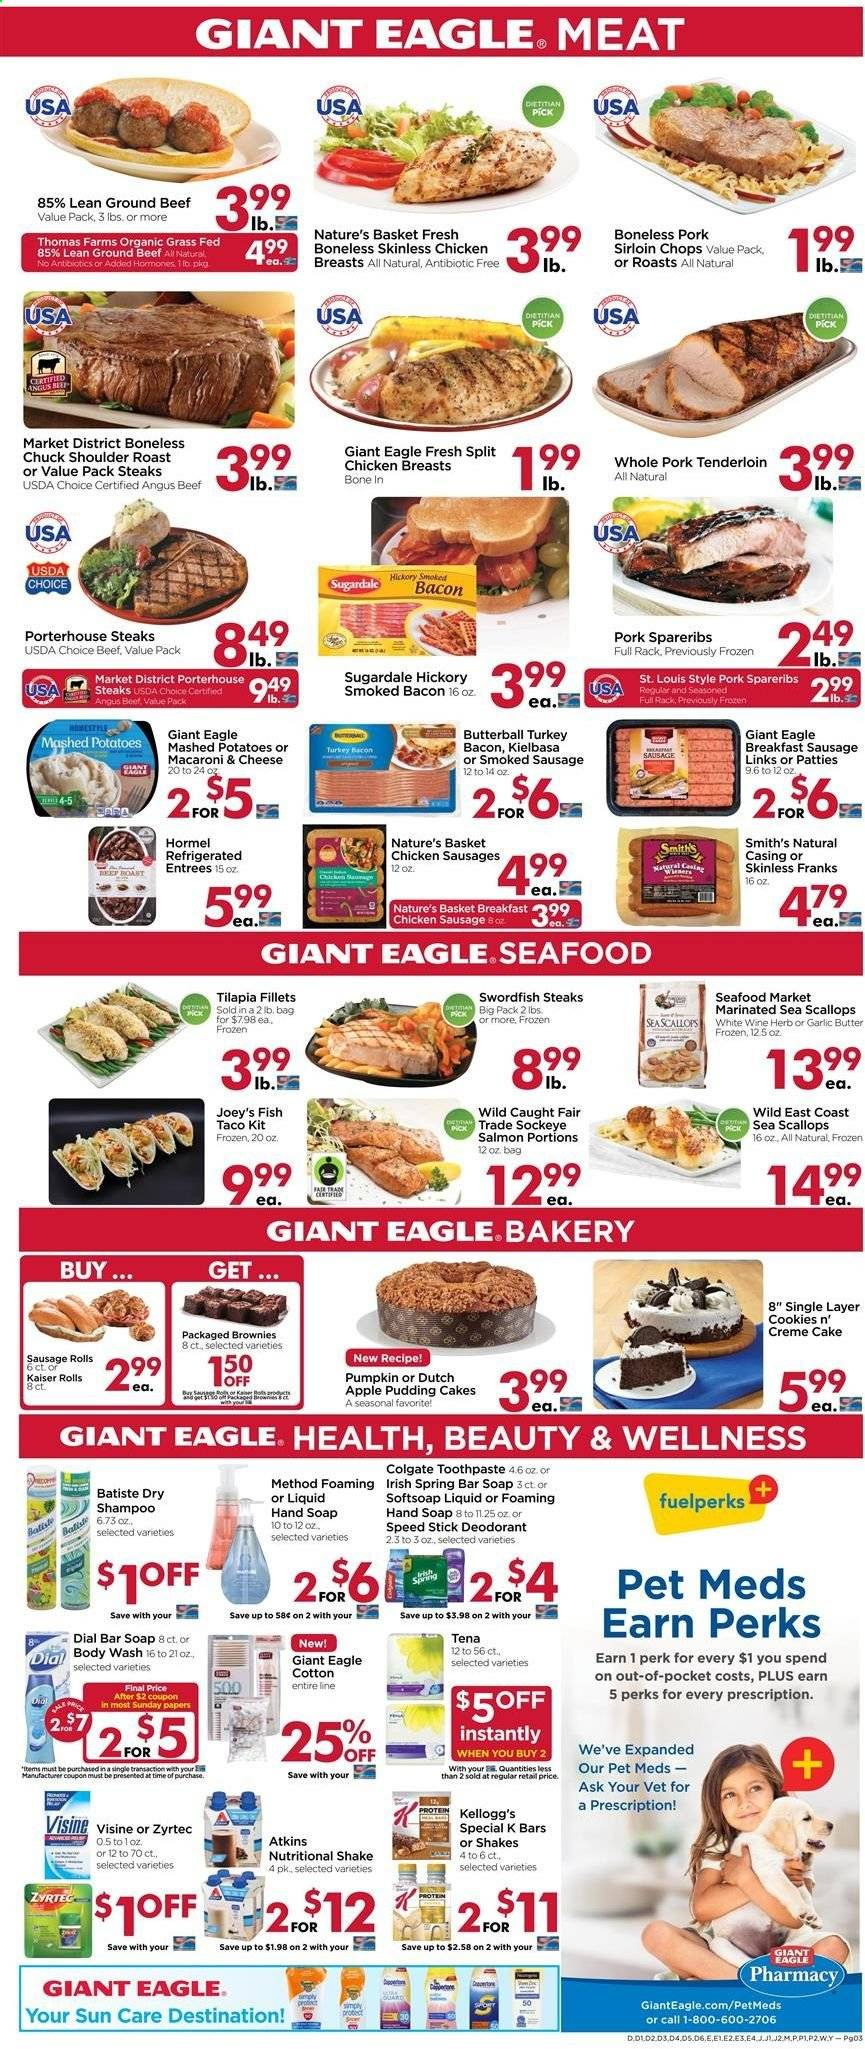 Giant Eagle Flyer  - 08.08.2019 - 08.14.2019. Page 3.